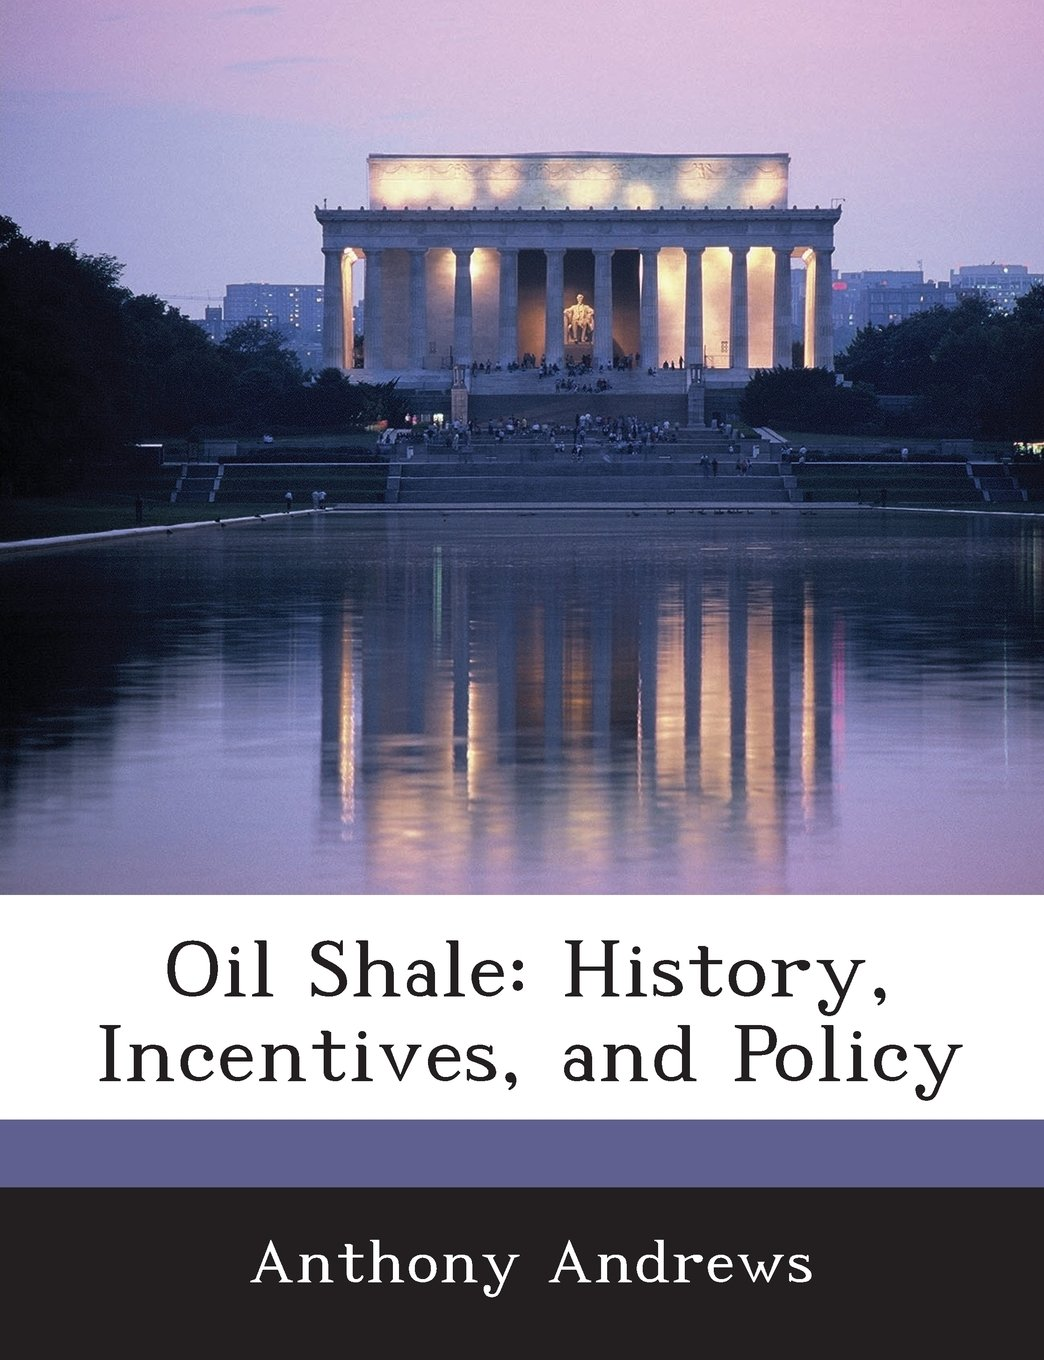 Download Oil Shale: History, Incentives, and Policy PDF